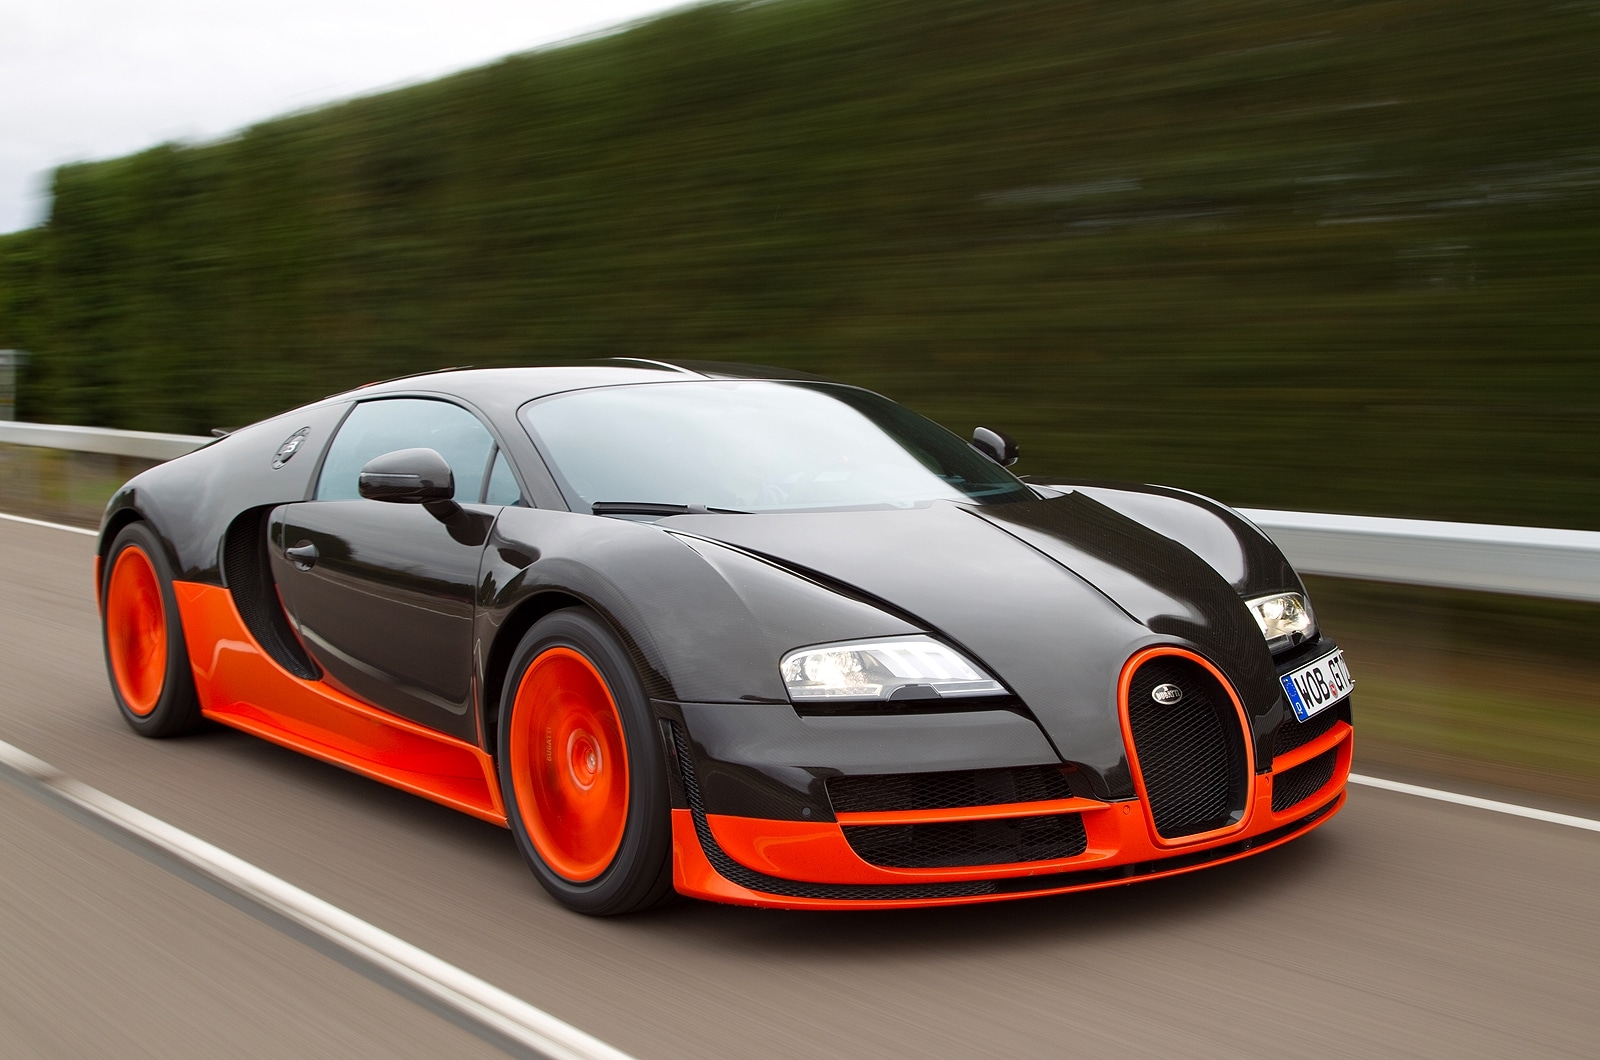 The Fastest Street Legal Cars Today | Car Service Prices